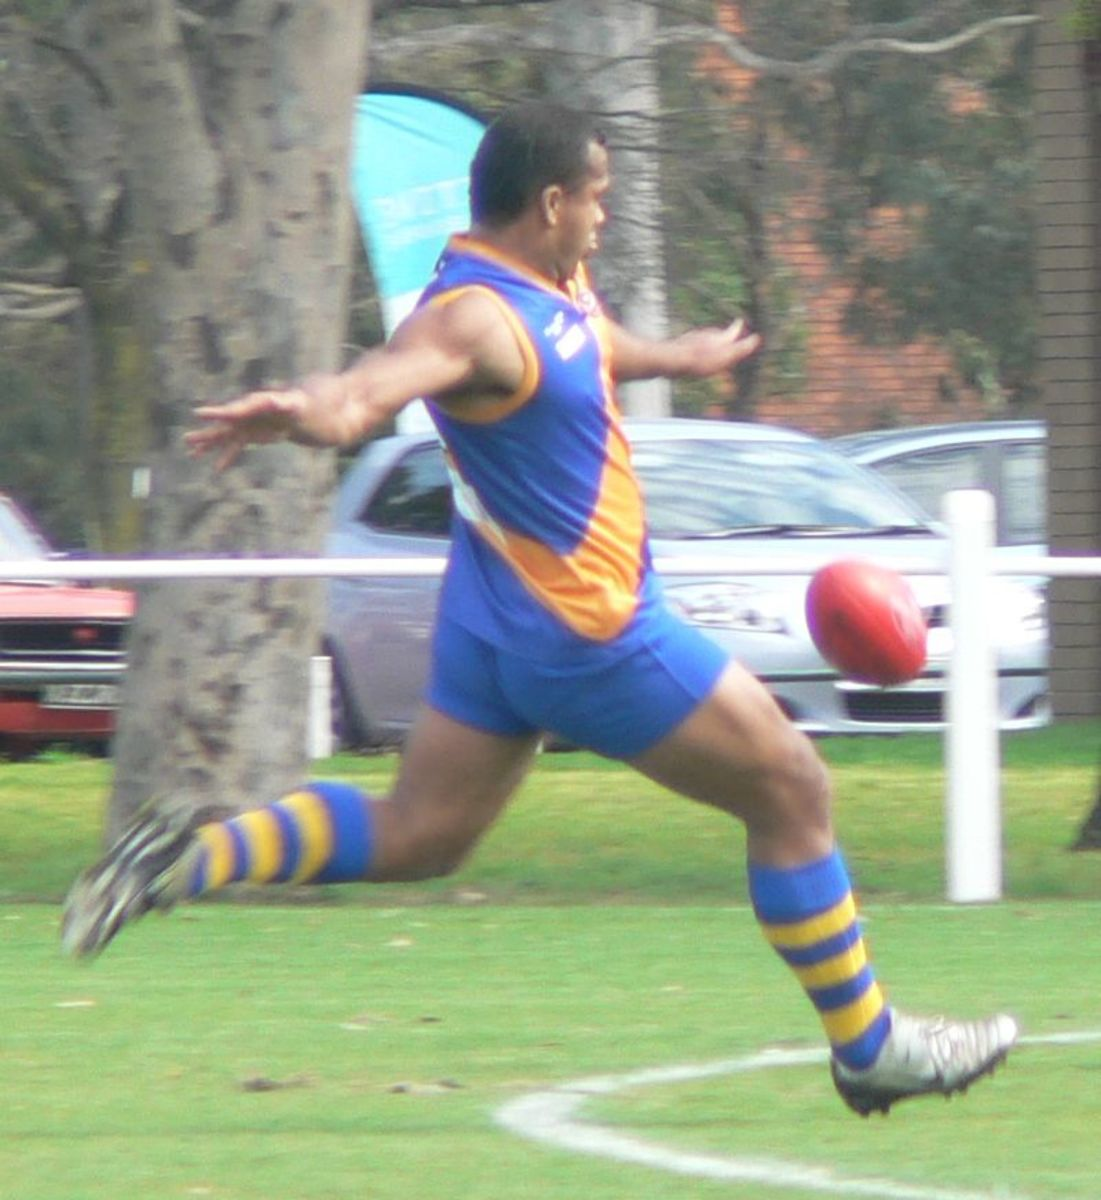 Man kicking a ball.